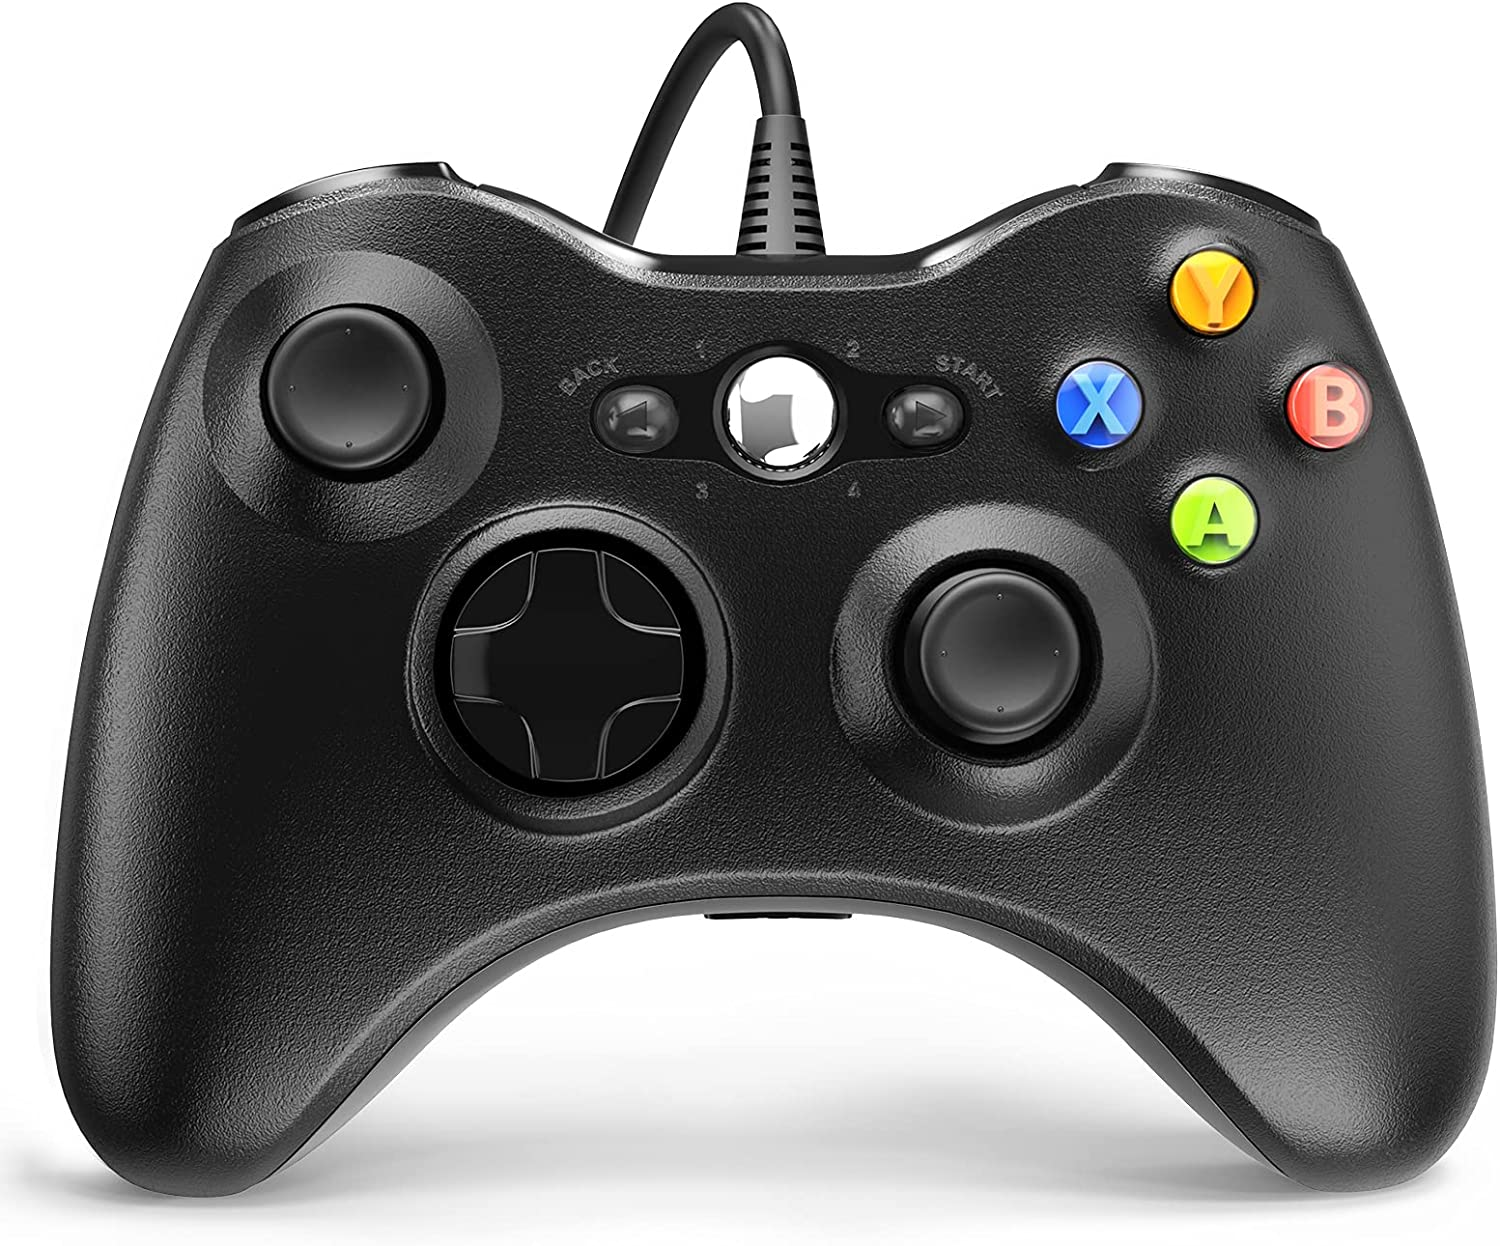 Wired Controller for Xbox 360, YAEYE Game Controller for Xbox 360 with Dual-Vibration Turbo for Microsoft Xbox 360/360 Slim and PC Windows 7,8,10